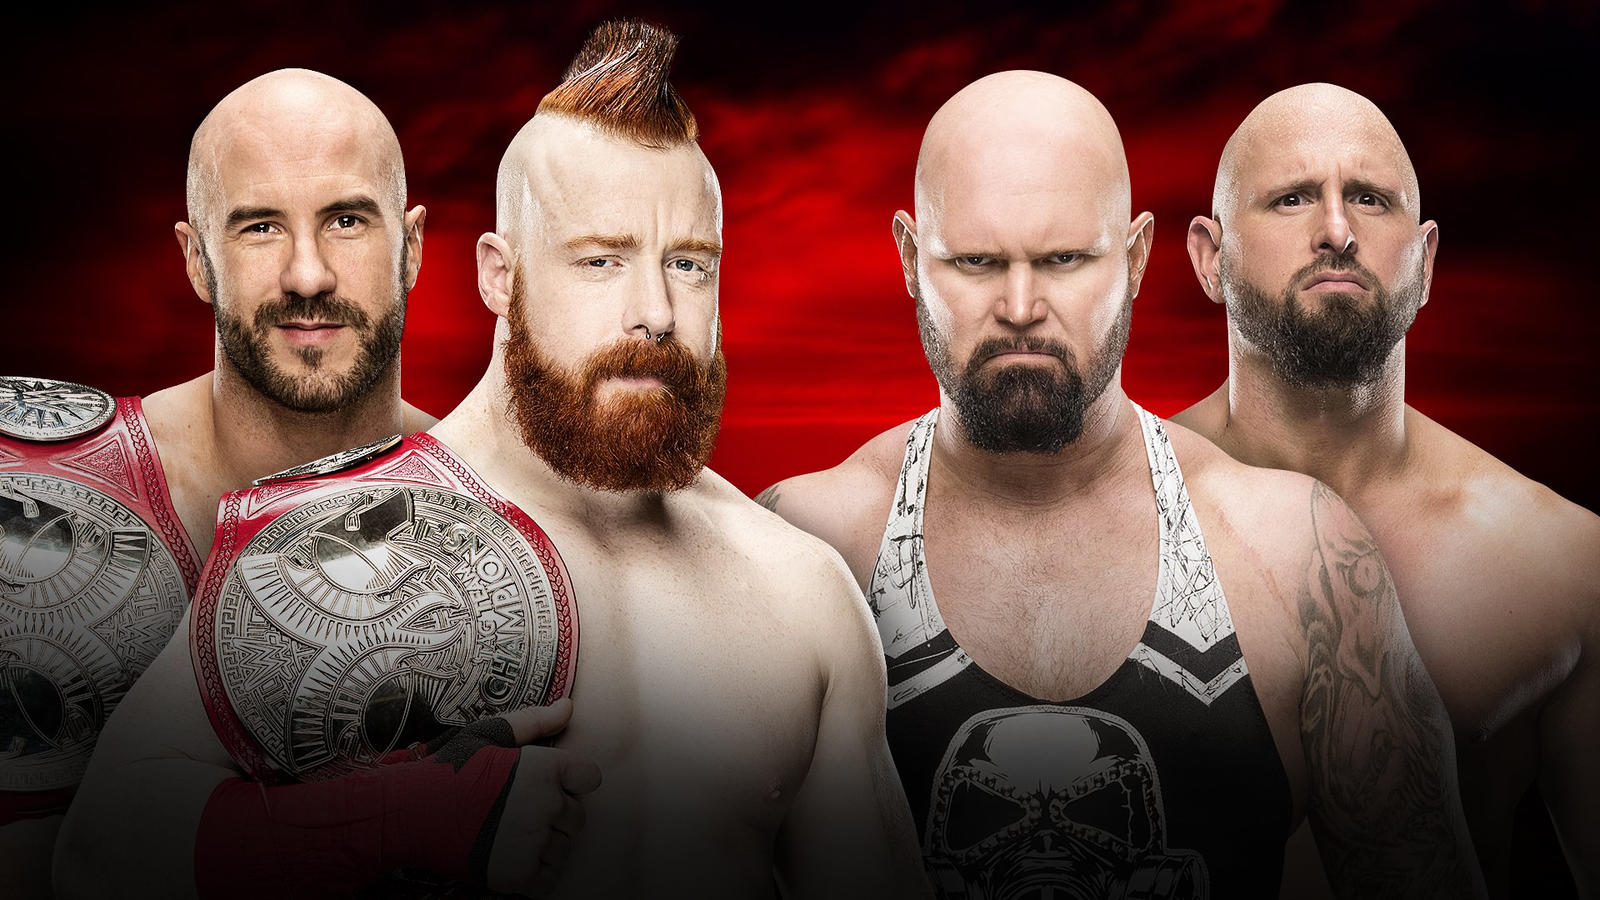 Confirmed and Potential Matches for WWE Royal Rumble 2017 20170123_Kickoff_CesaroSheamus_KarlLuke--ff2659d03e9a2c68ff356f6247855160